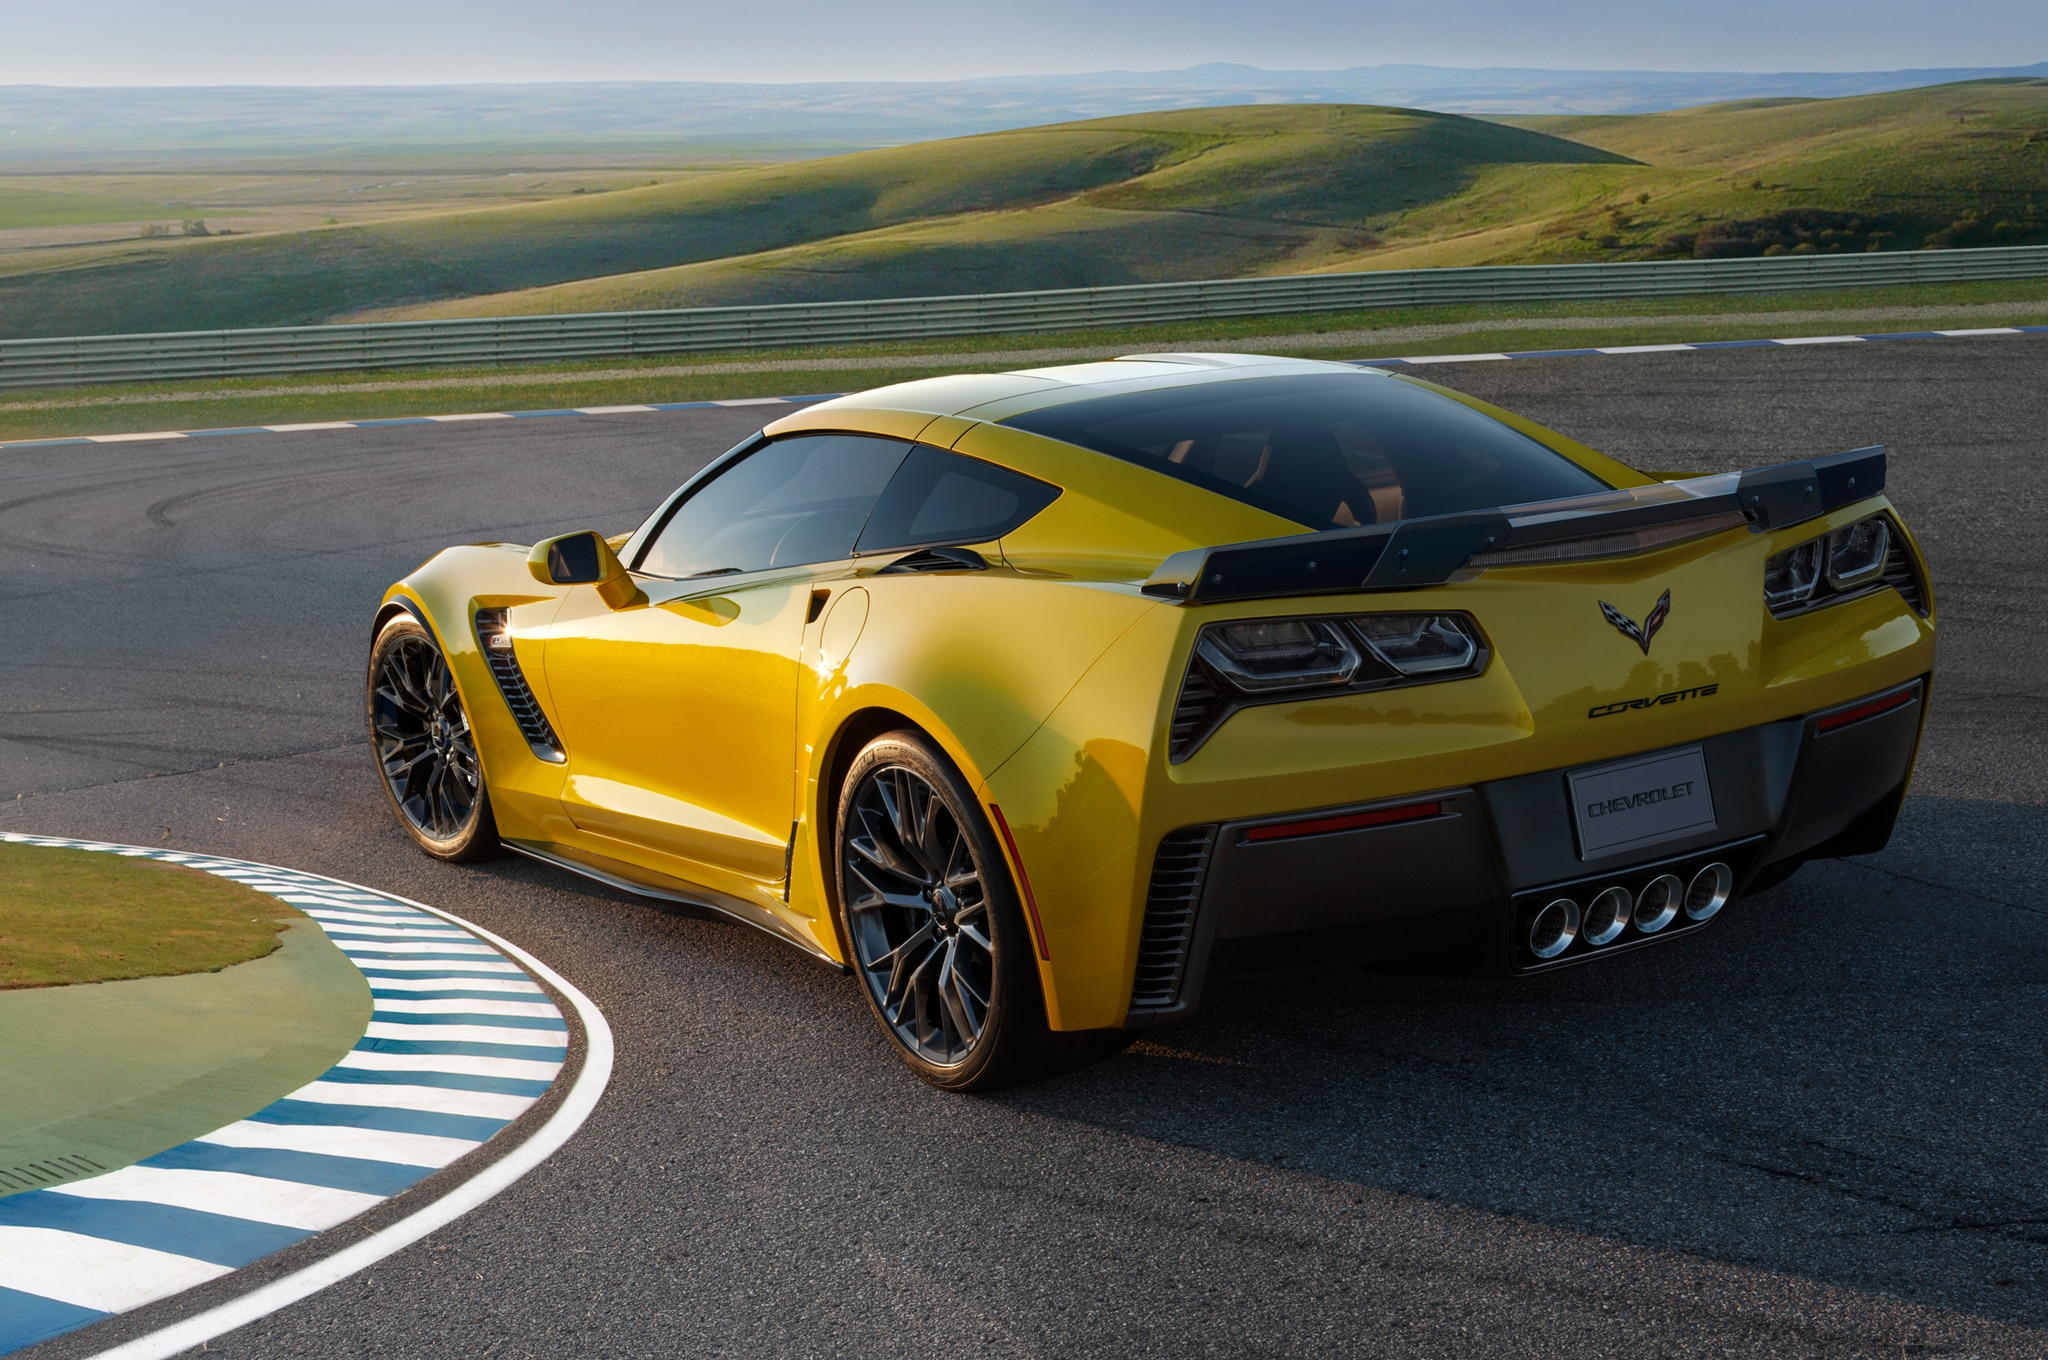 2015 chevrolet corvette z06 priced at 78 995 convertible at 83 995. Black Bedroom Furniture Sets. Home Design Ideas